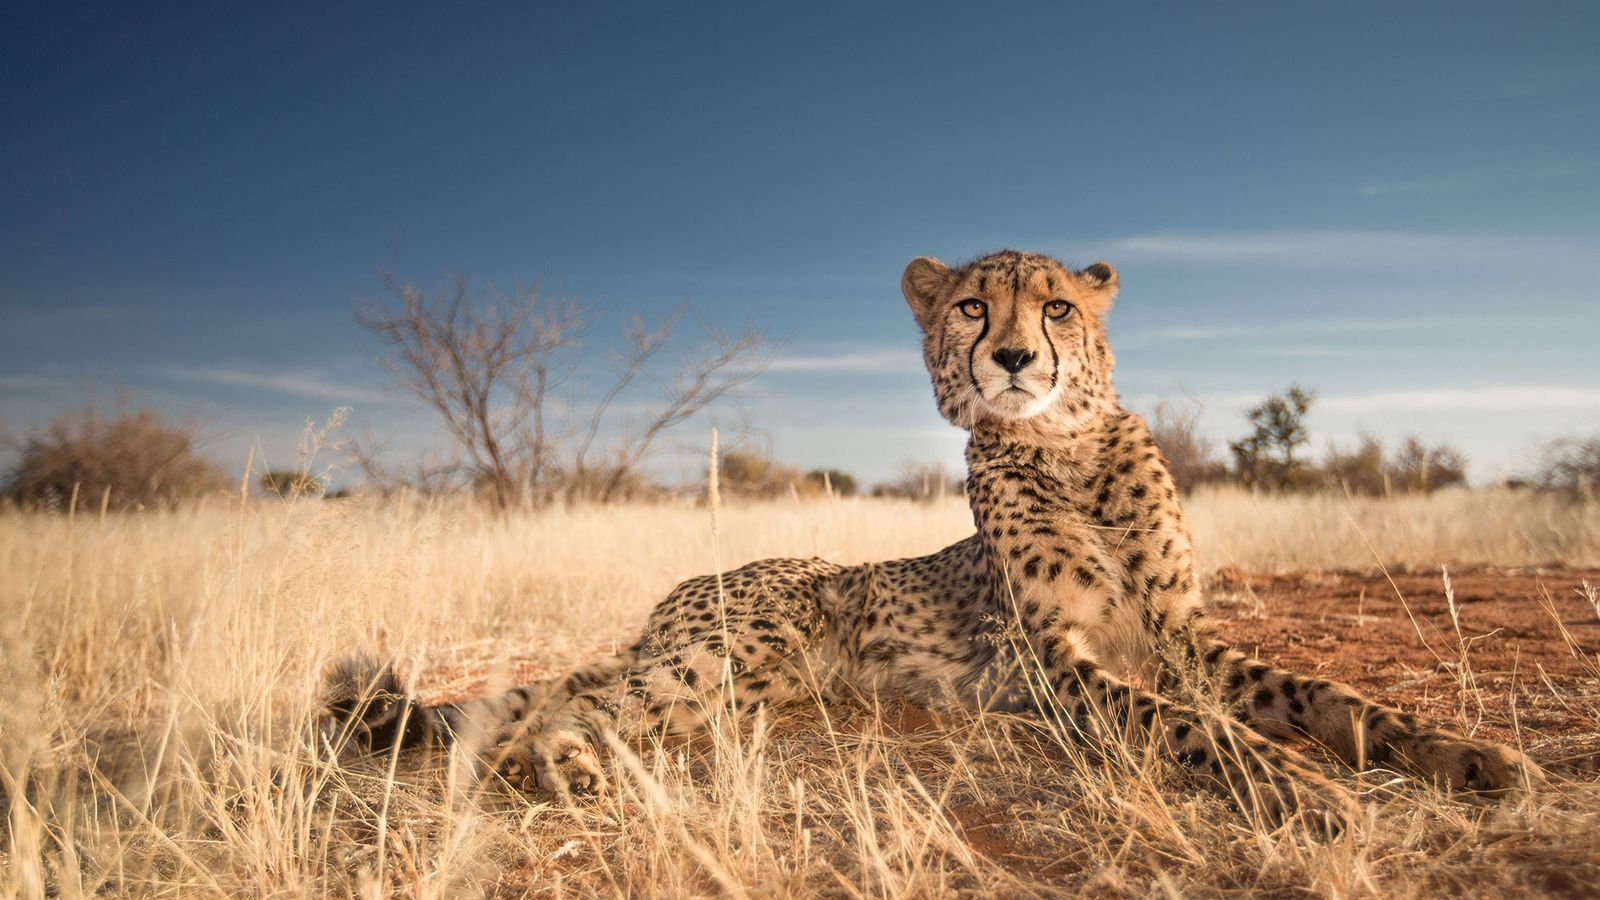 Stunning Pictures of Cheetahs in Action